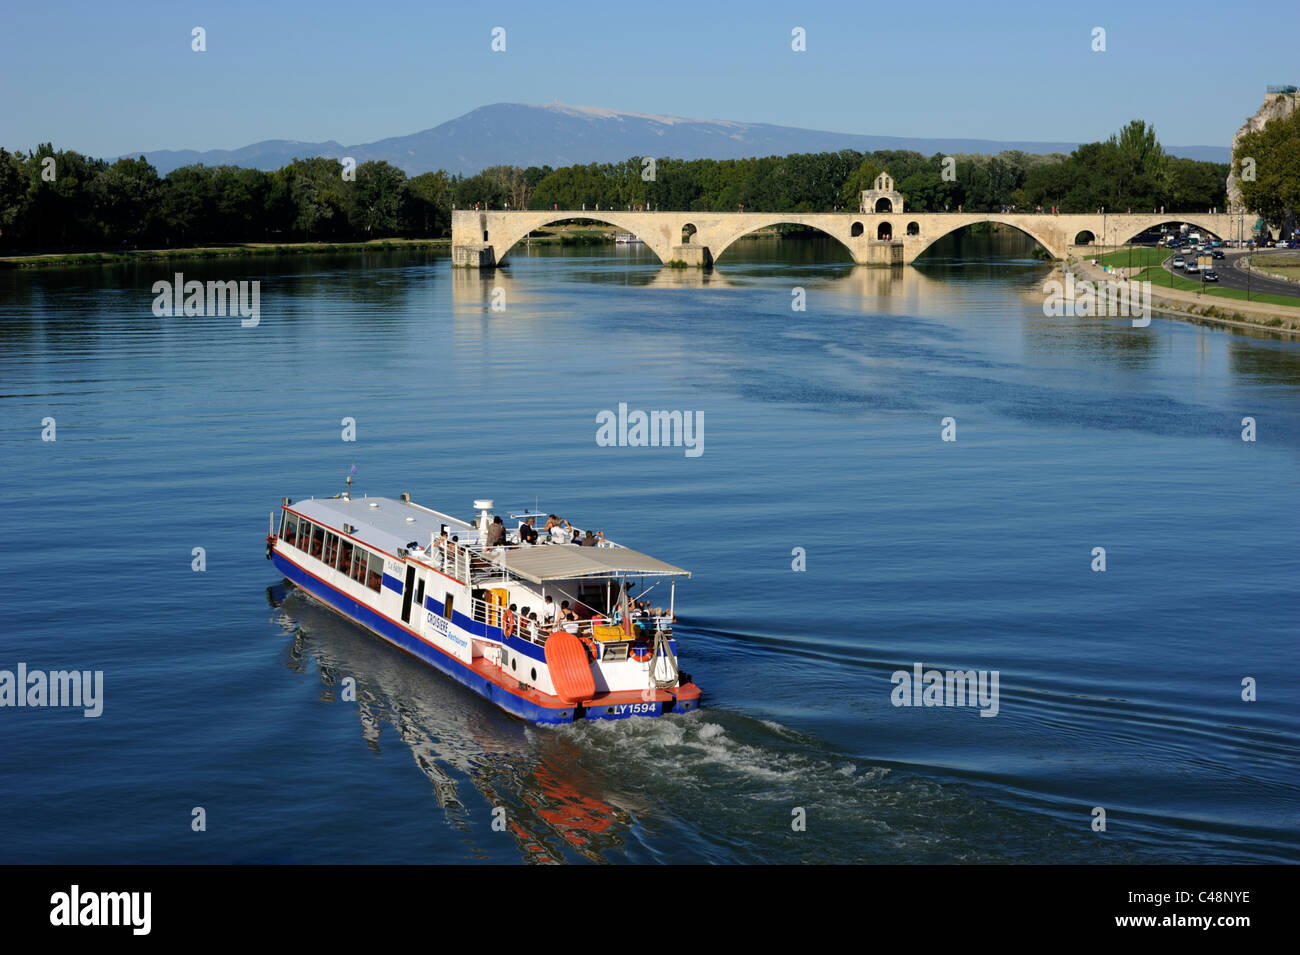 France Provence Avignon Rhone River River Cruise Boat And - France river cruise